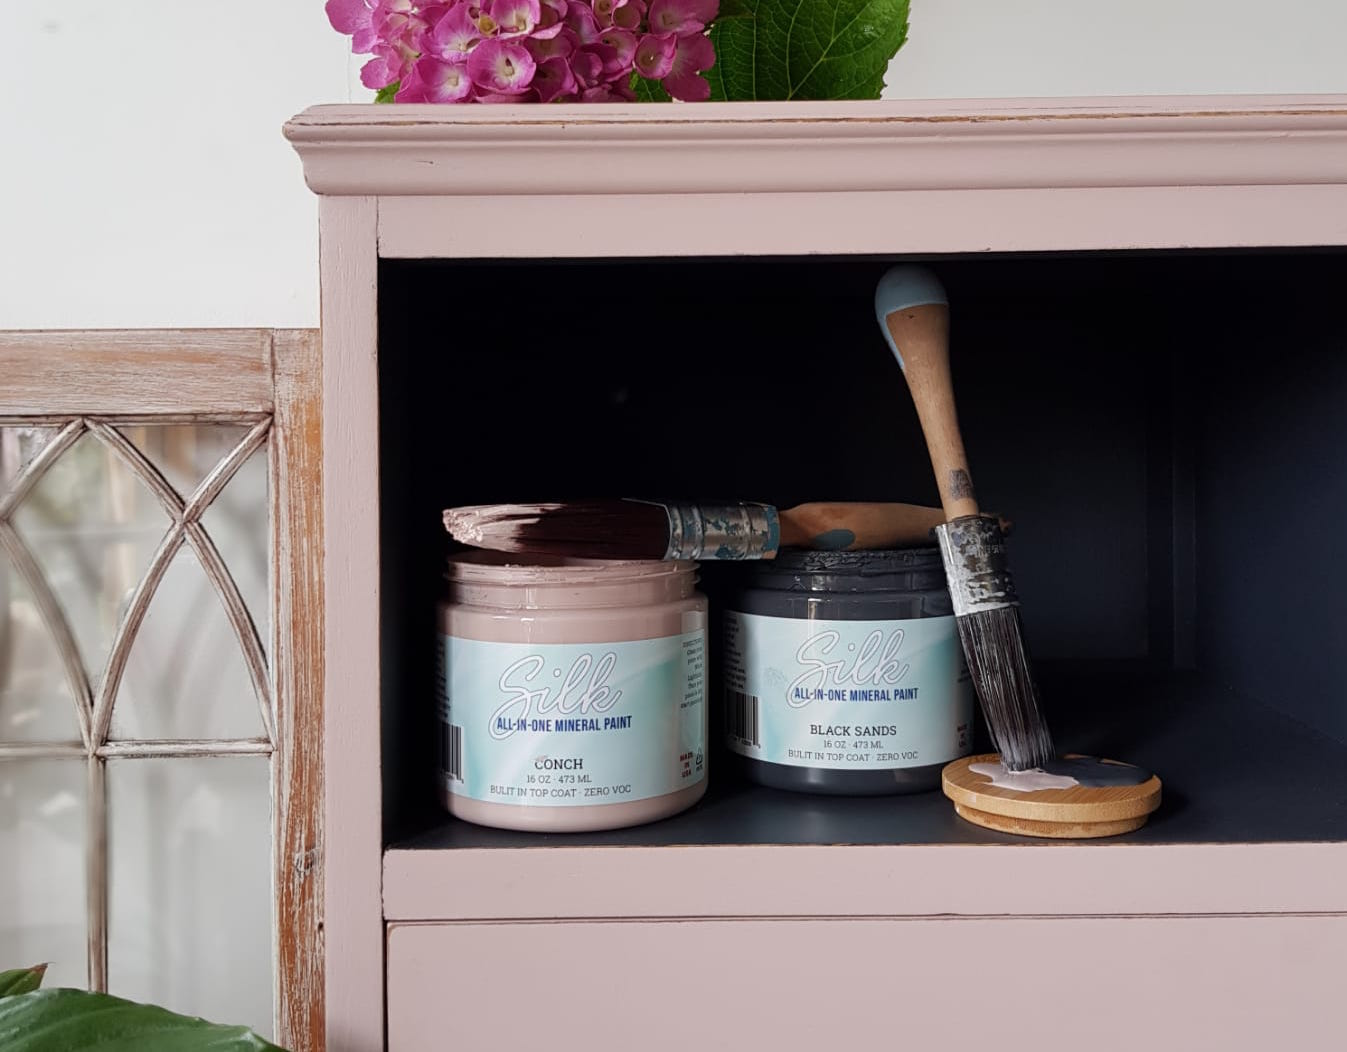 Dixie Belle Paint Launches New Paint Range